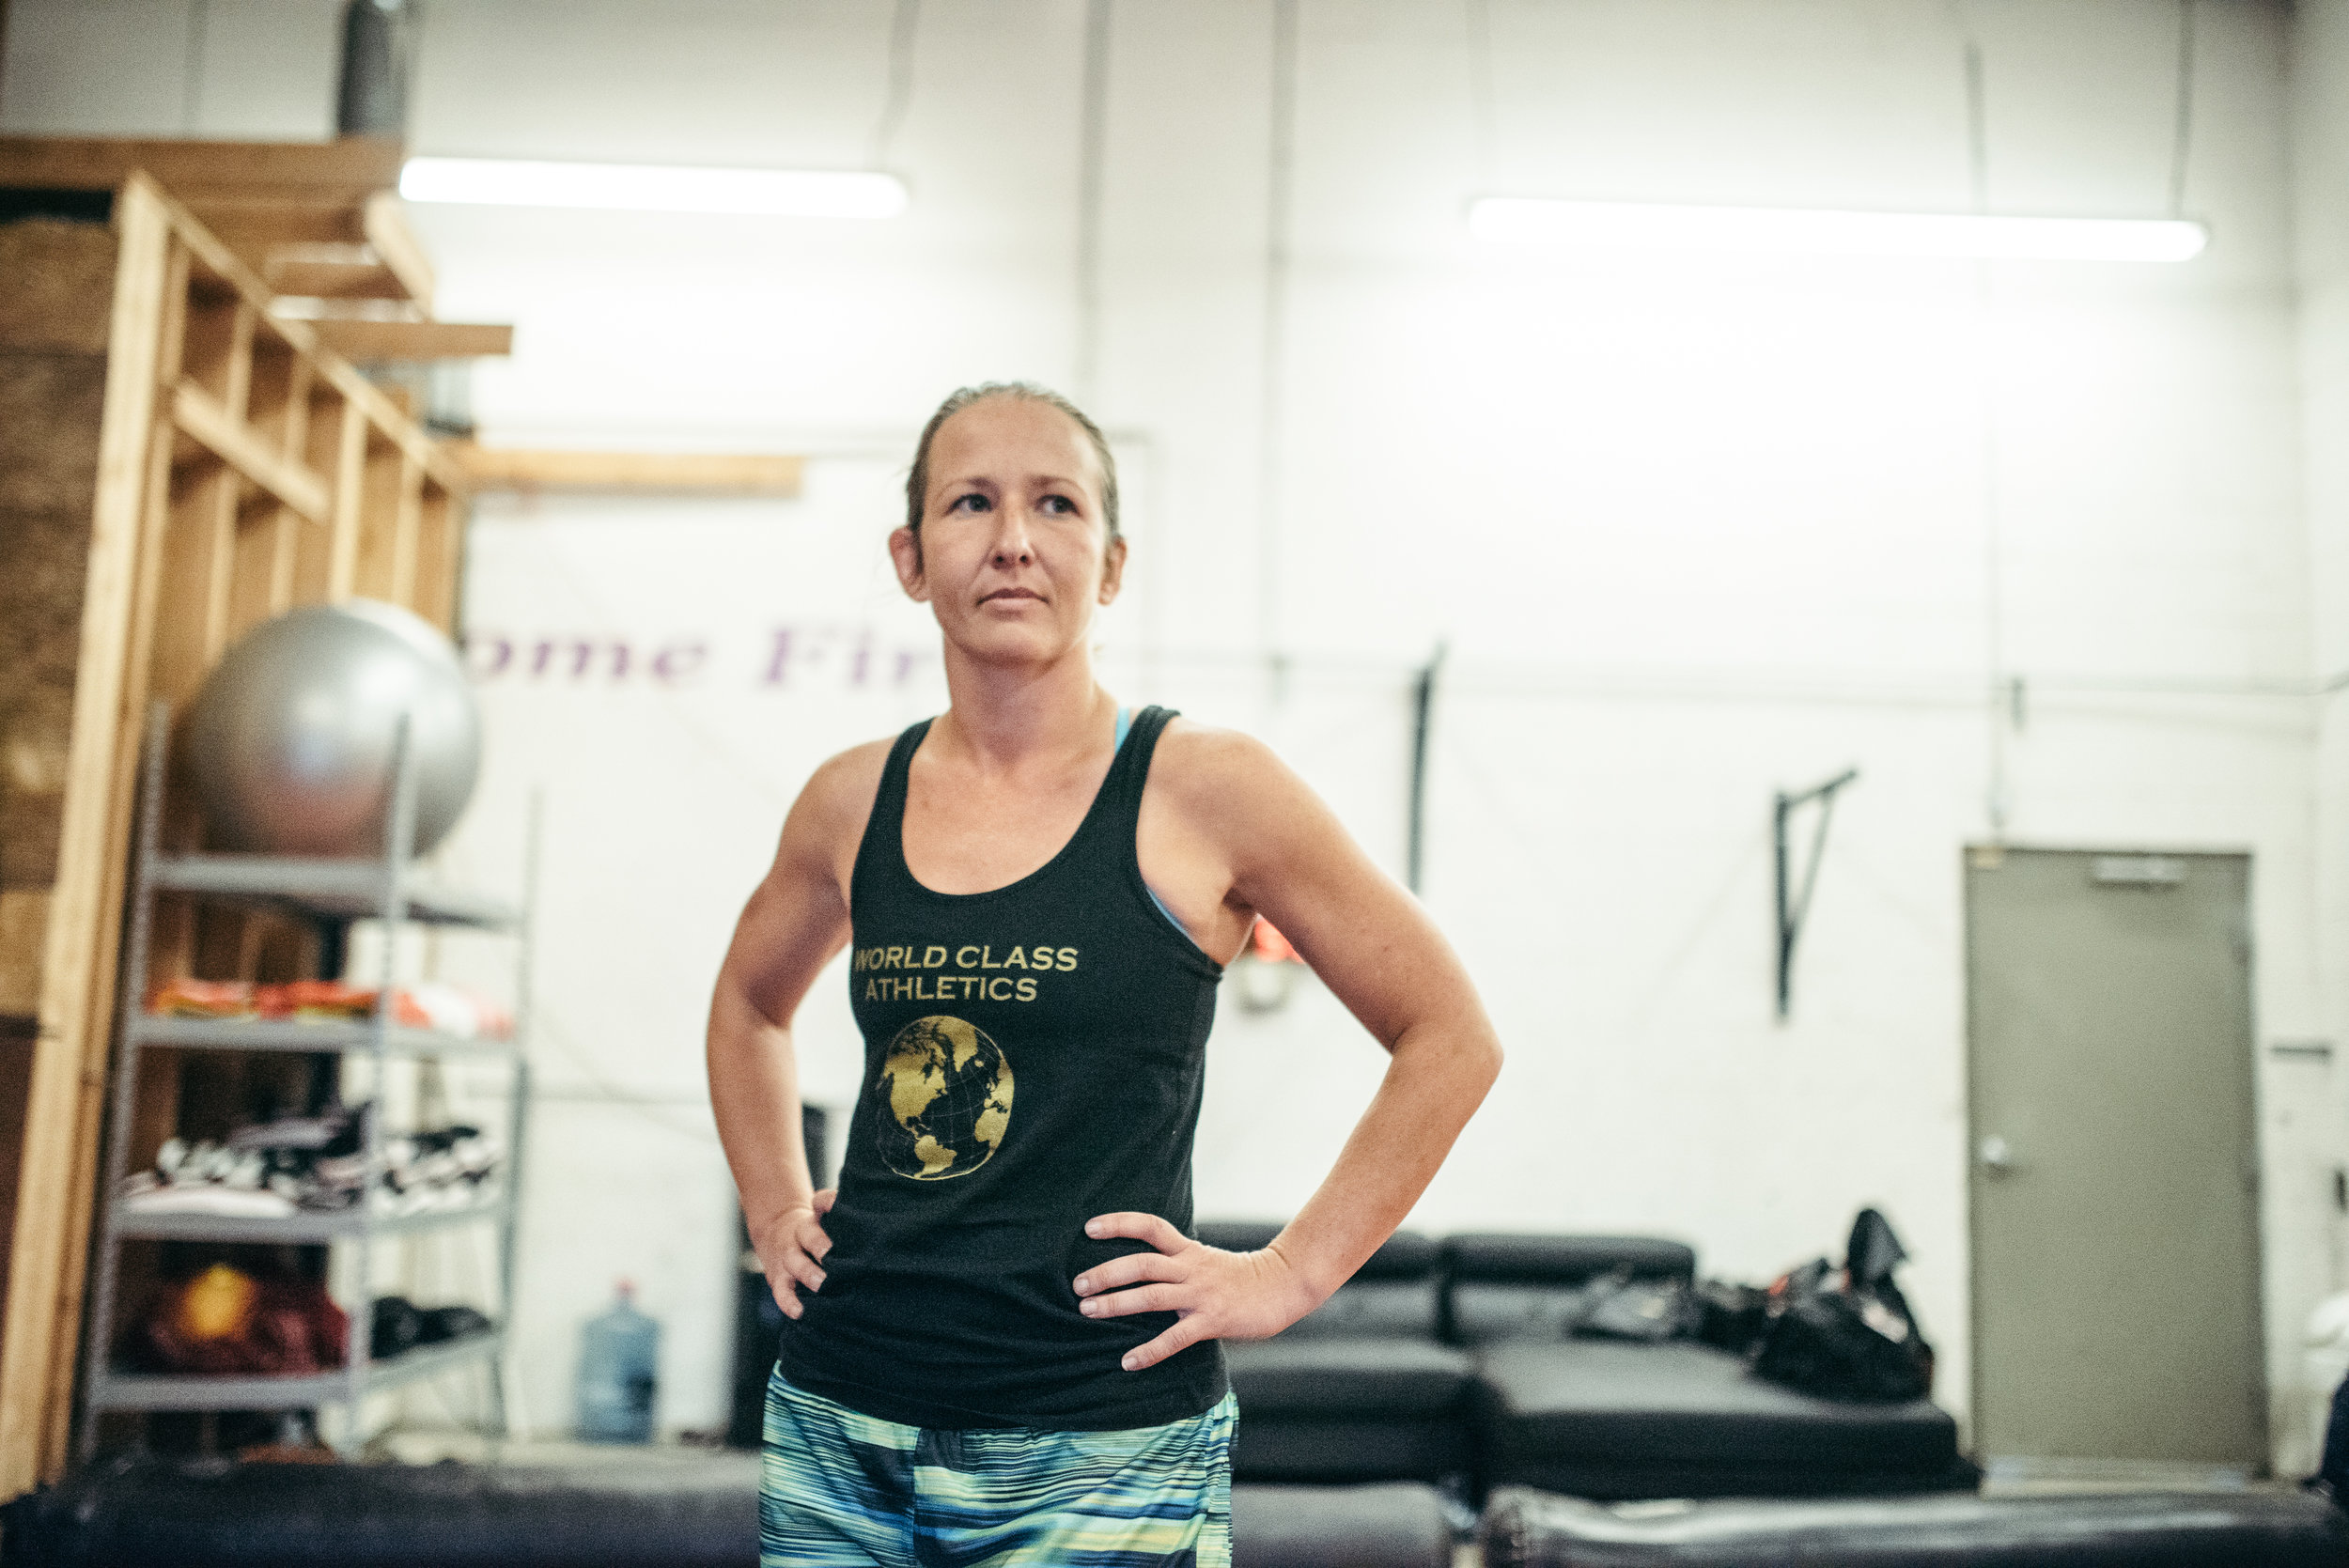 """Robin practiced martial arts for years, rising to considerable success as an amateur flyweight in Mixed Martial Arts, with a record of 6-1 and holding the title of FCFF Superfight Champion. However, her love for the sport was offset by misogyny and negative attitudes among the people she competed with. She decided to either start her own gym or quit the sport. She said, """"I was funding my dream with credit cards. I wasn't in a position for a home equity loan or conventional funding. If Mercy Corps Northwest hadn't given me a loan, I would have had nothing to go on--I probably would have just had friends training in my garage."""""""